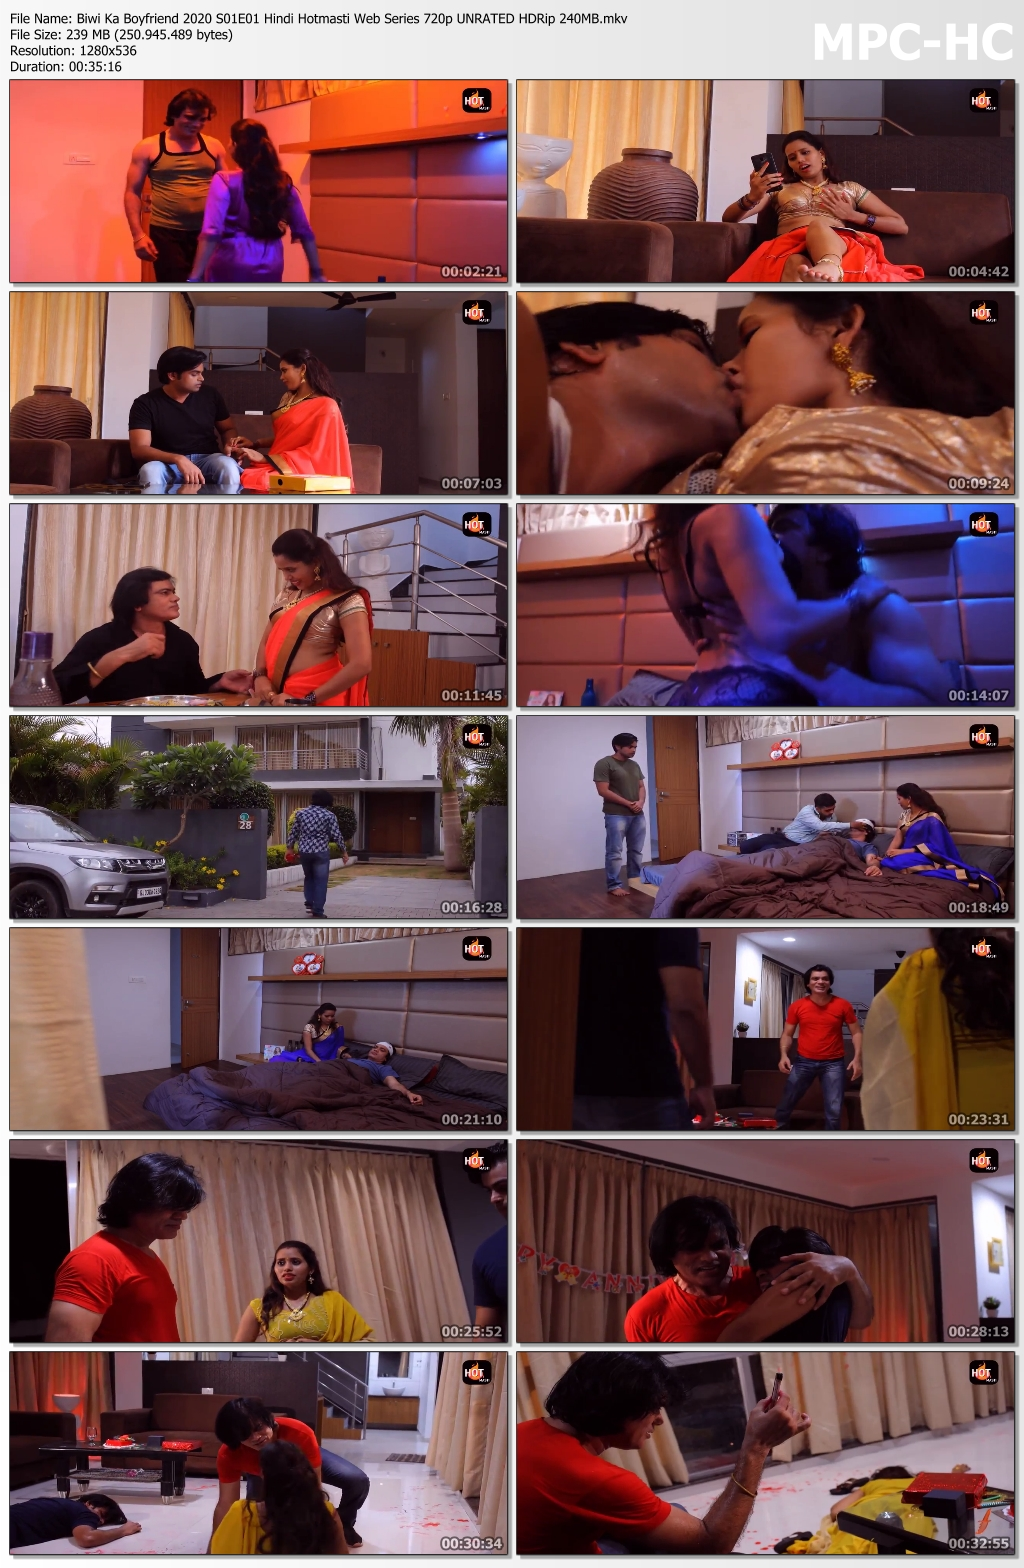 Biwi-Ka-Boyfriend-2020-S01-E01-Hindi-Hotmasti-Web-Series-720p-UNRATED-HDRip-240-MB-mkv-thumbs